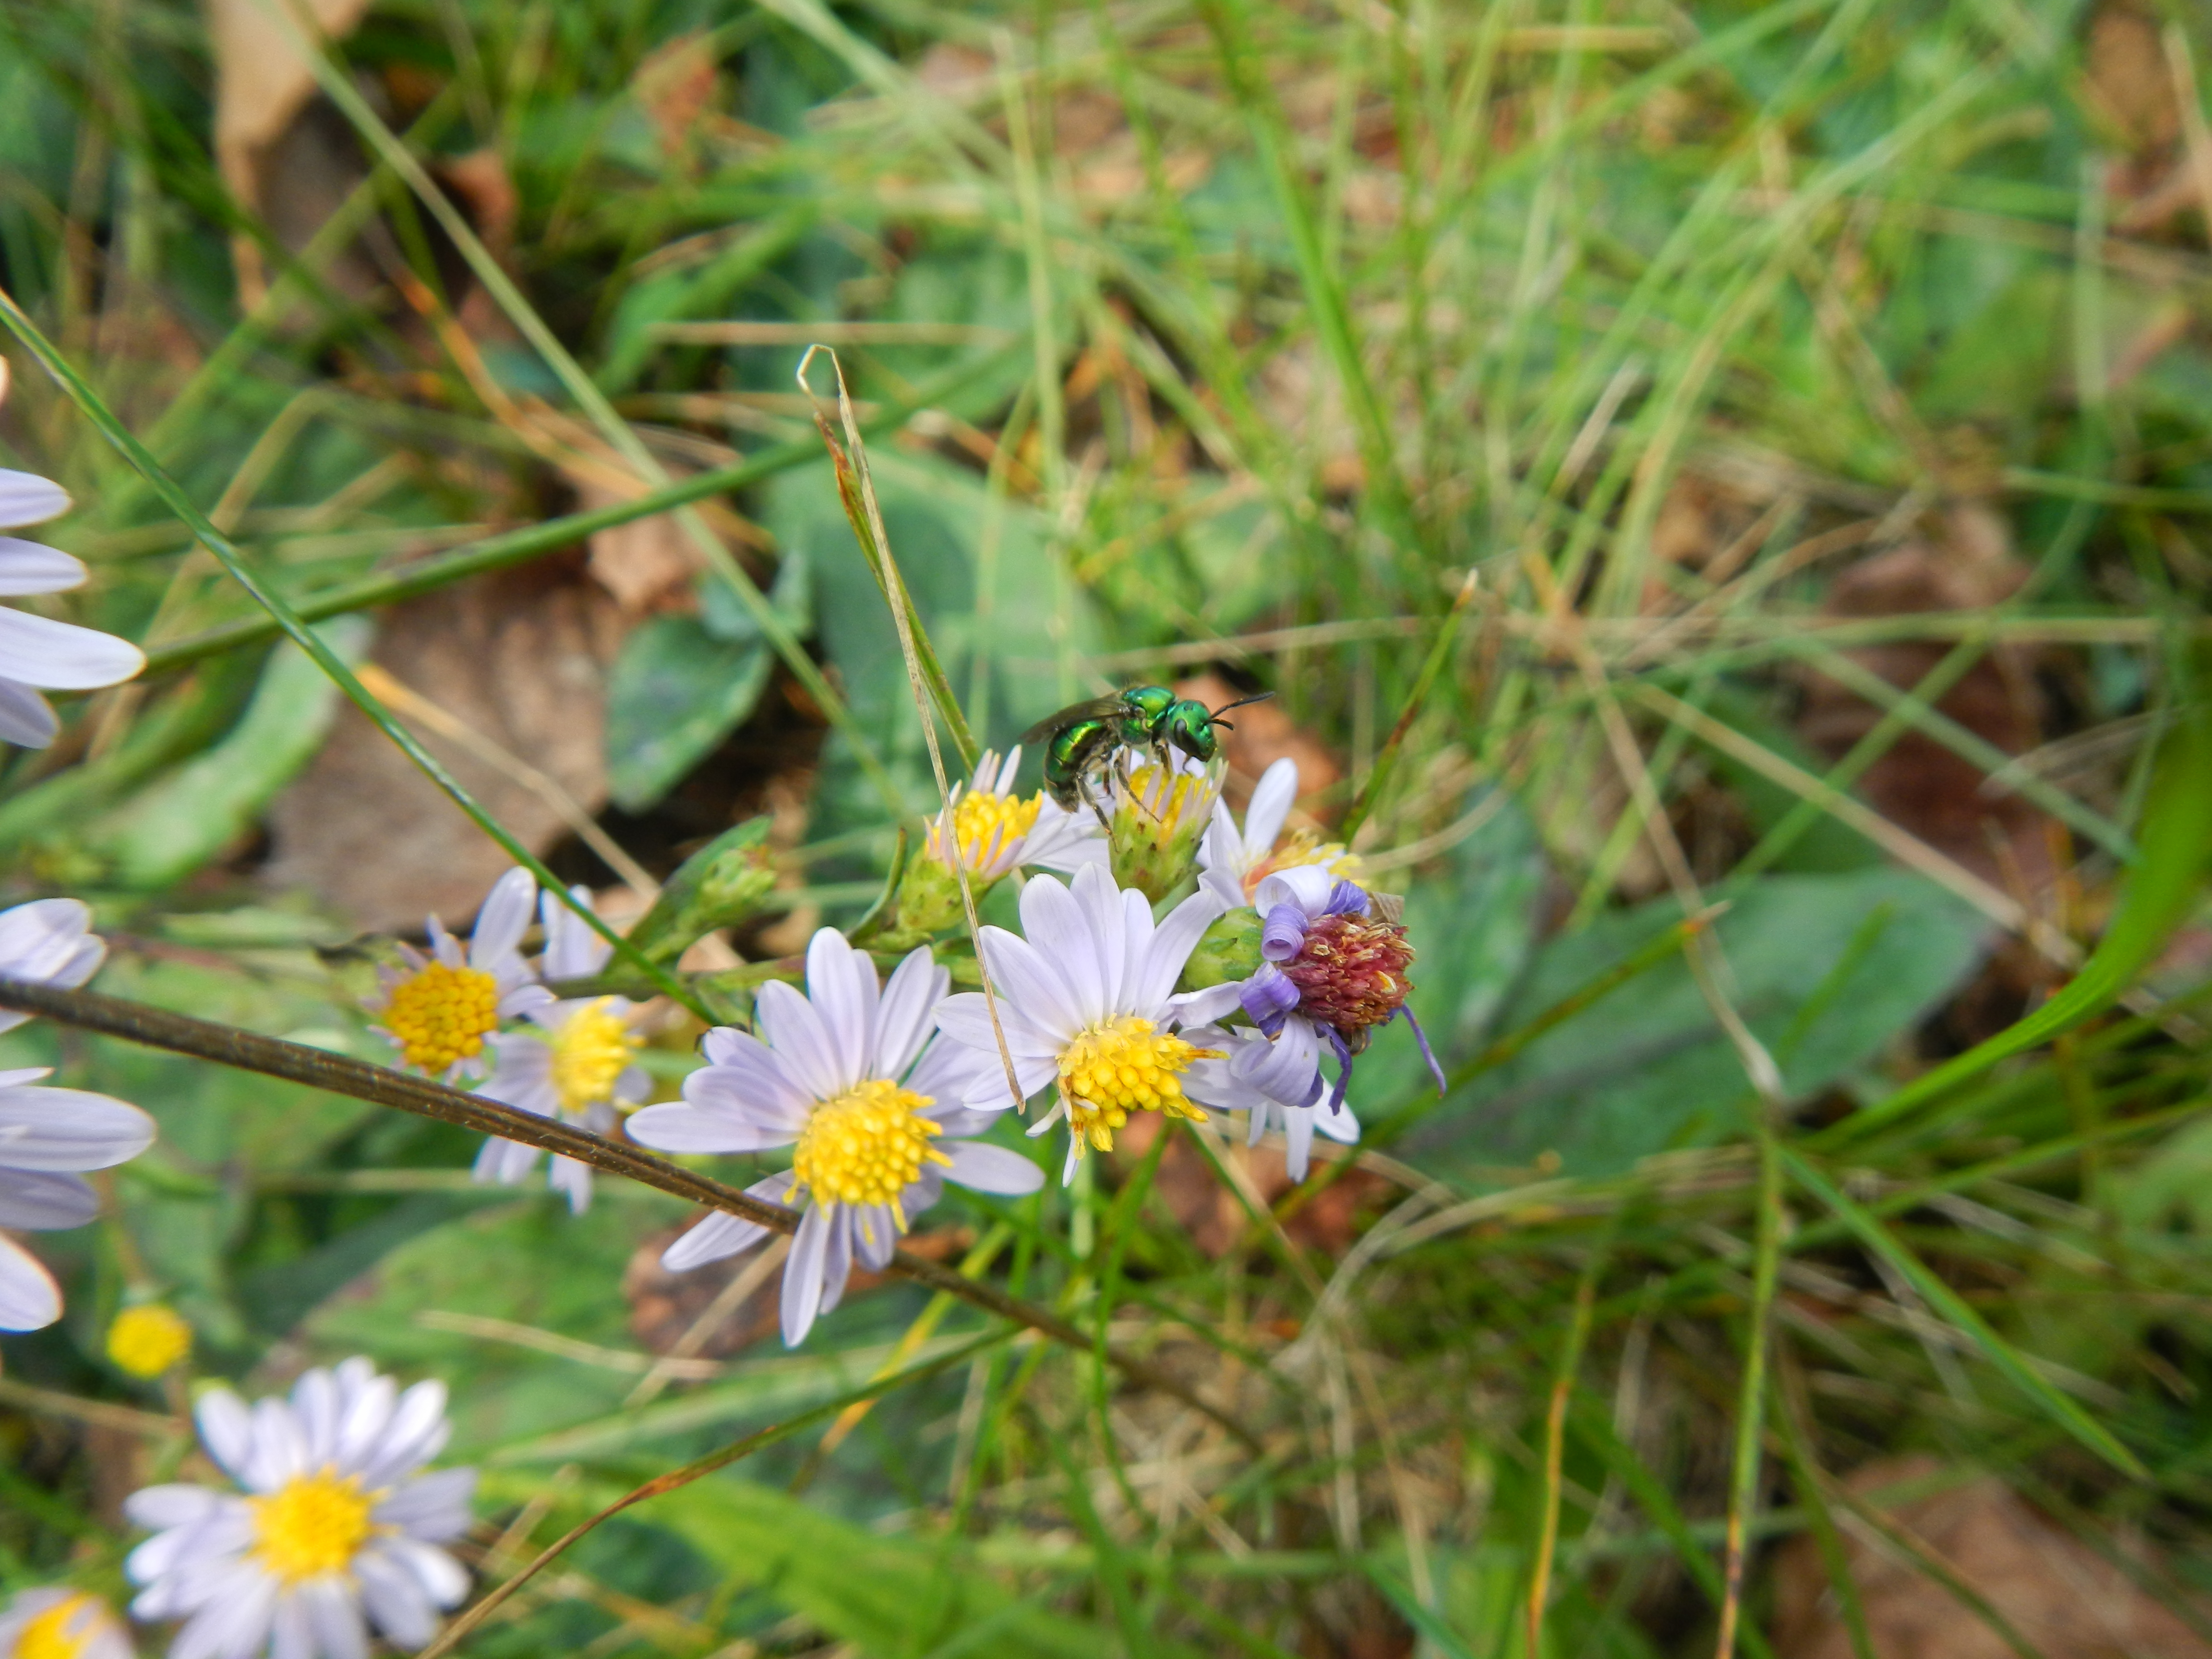 I spotted this lovely little Augochlora bee on a still-blooming sprig of aster in front of my house